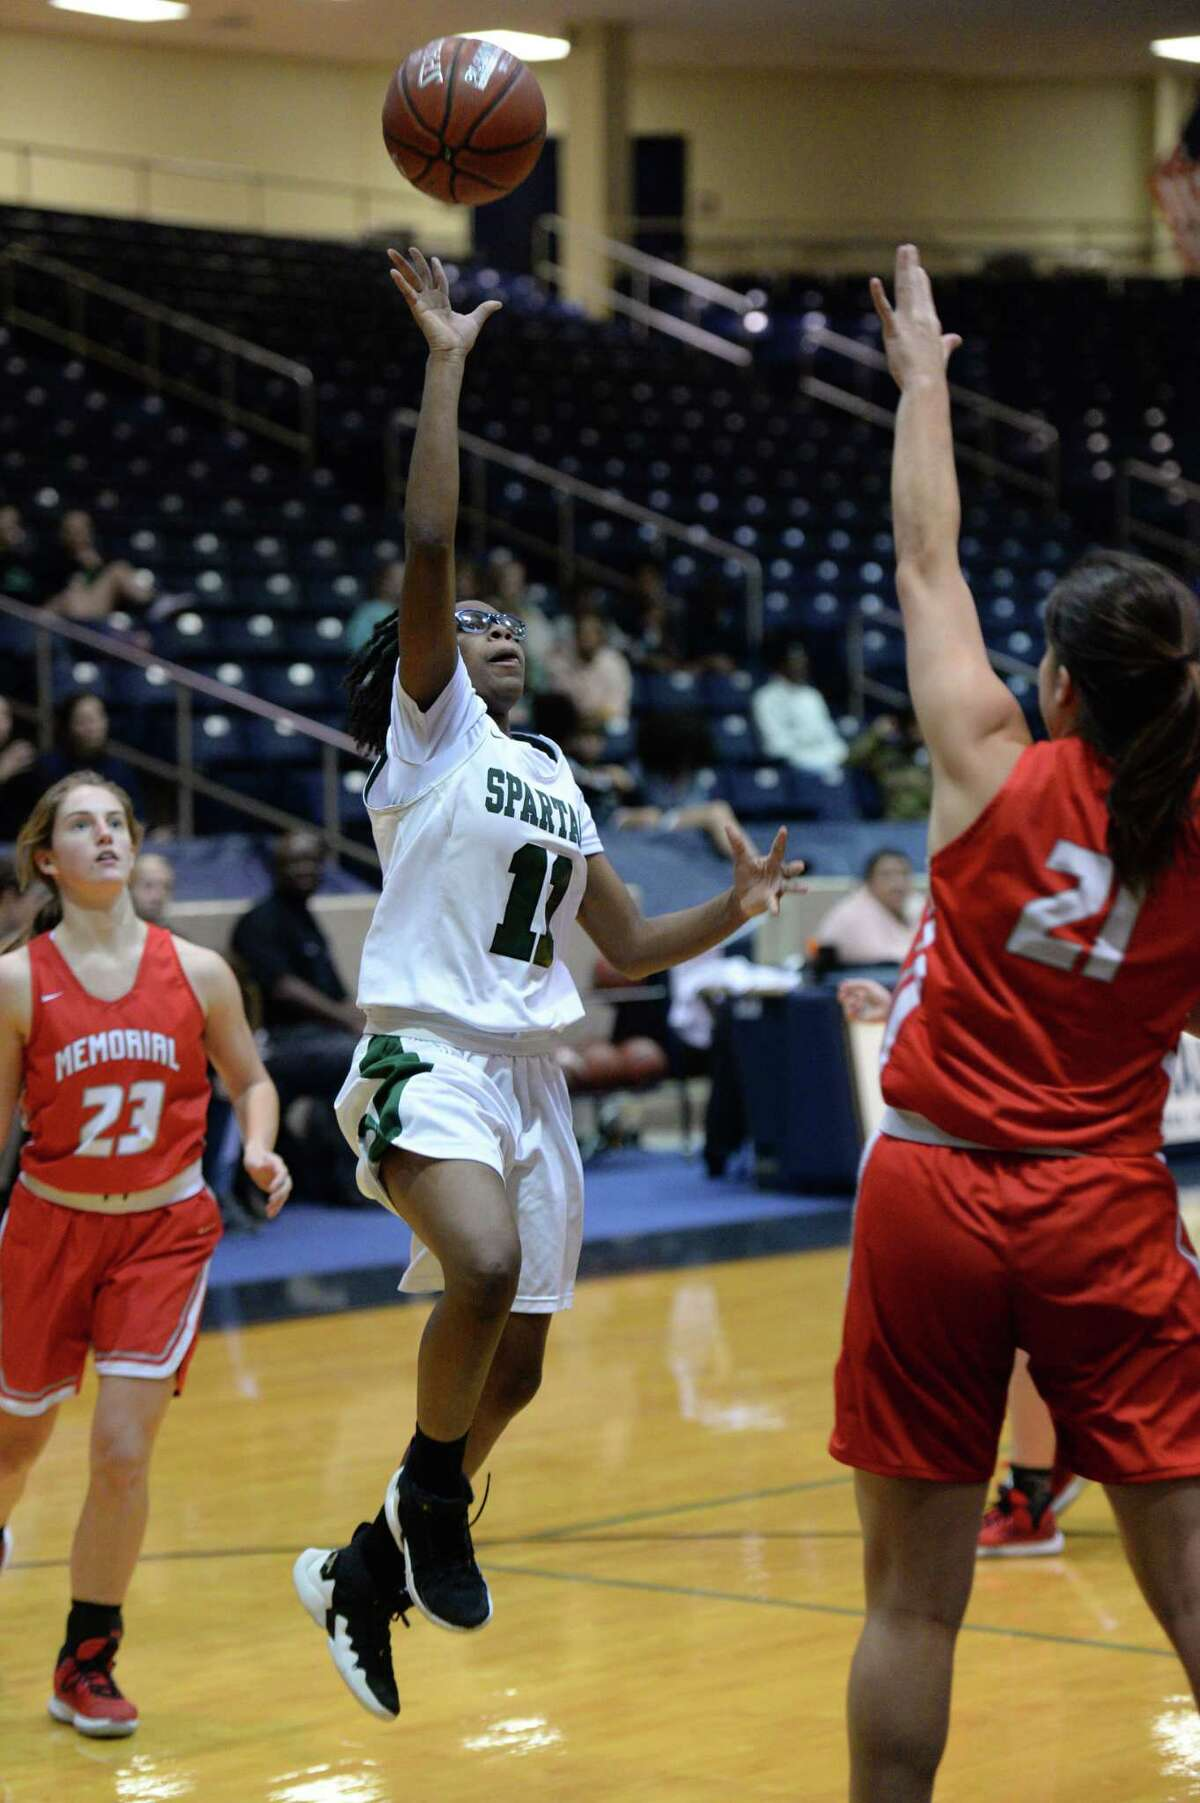 Jakyla Cheeves (11) of Stratford attempts a shot during the first half of a 6A Region III District 17 Girls basketball game between the Memorial Mustangs and the Stratford Spartans on Tuesday, December 17, 2019 at Coleman Coliseum, Houston, TX.